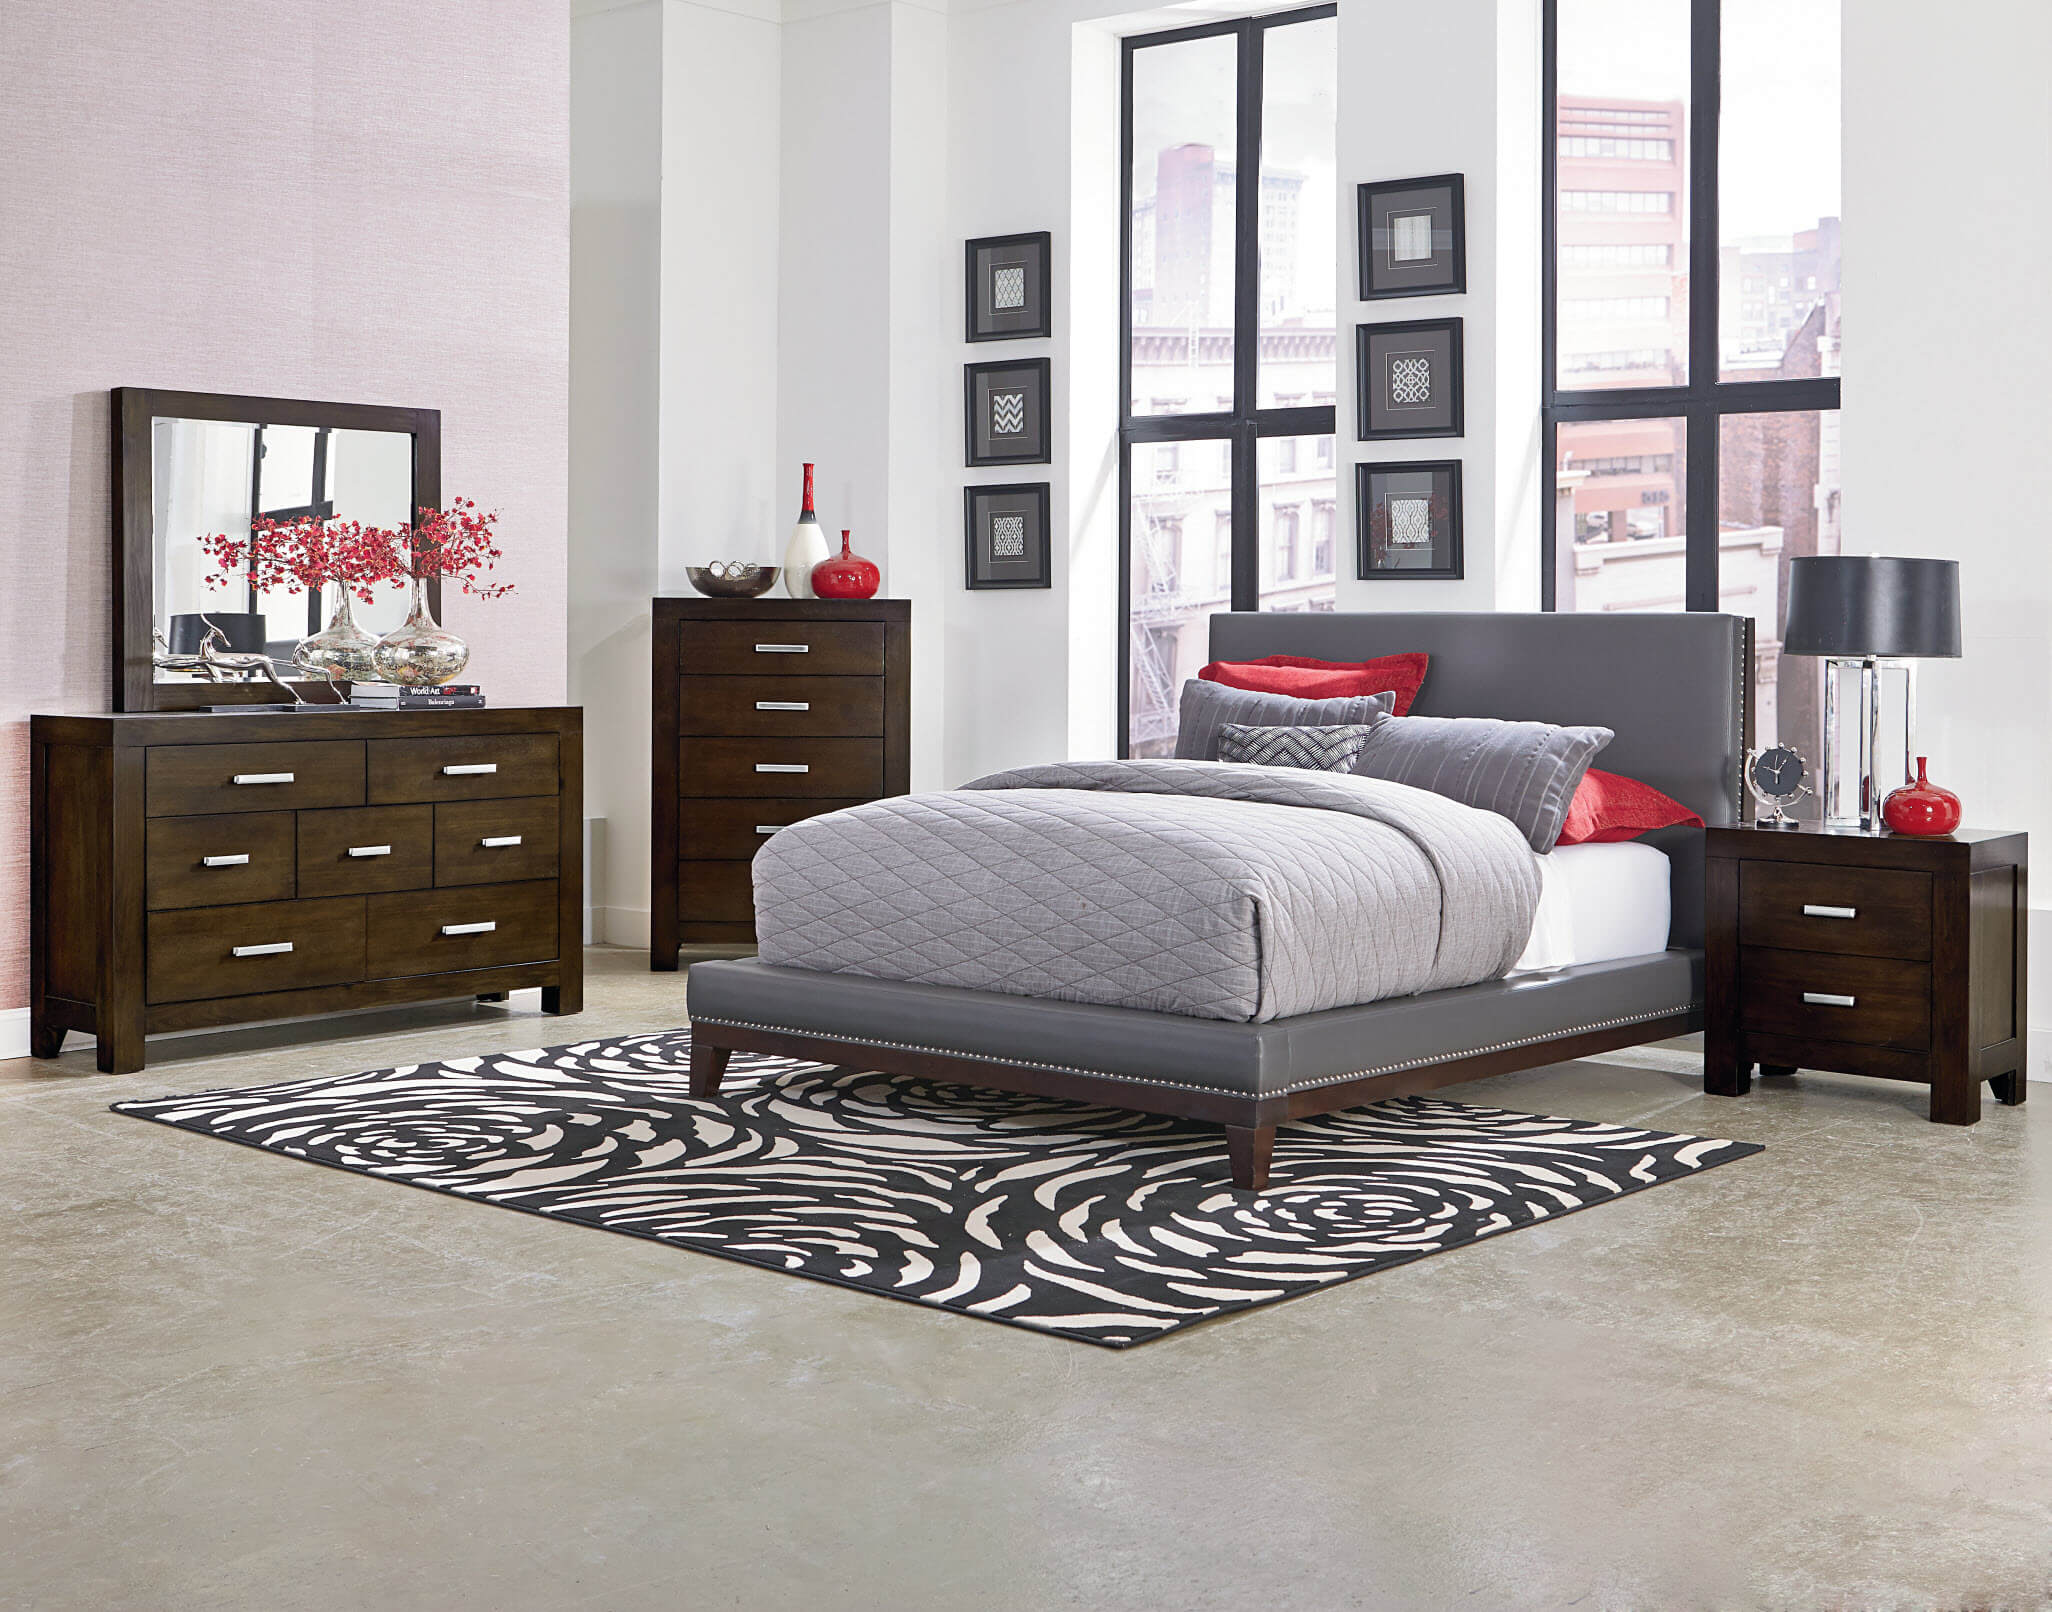 grey bedroom furniture couture platform bedroom set bedroom furniture sets 11746